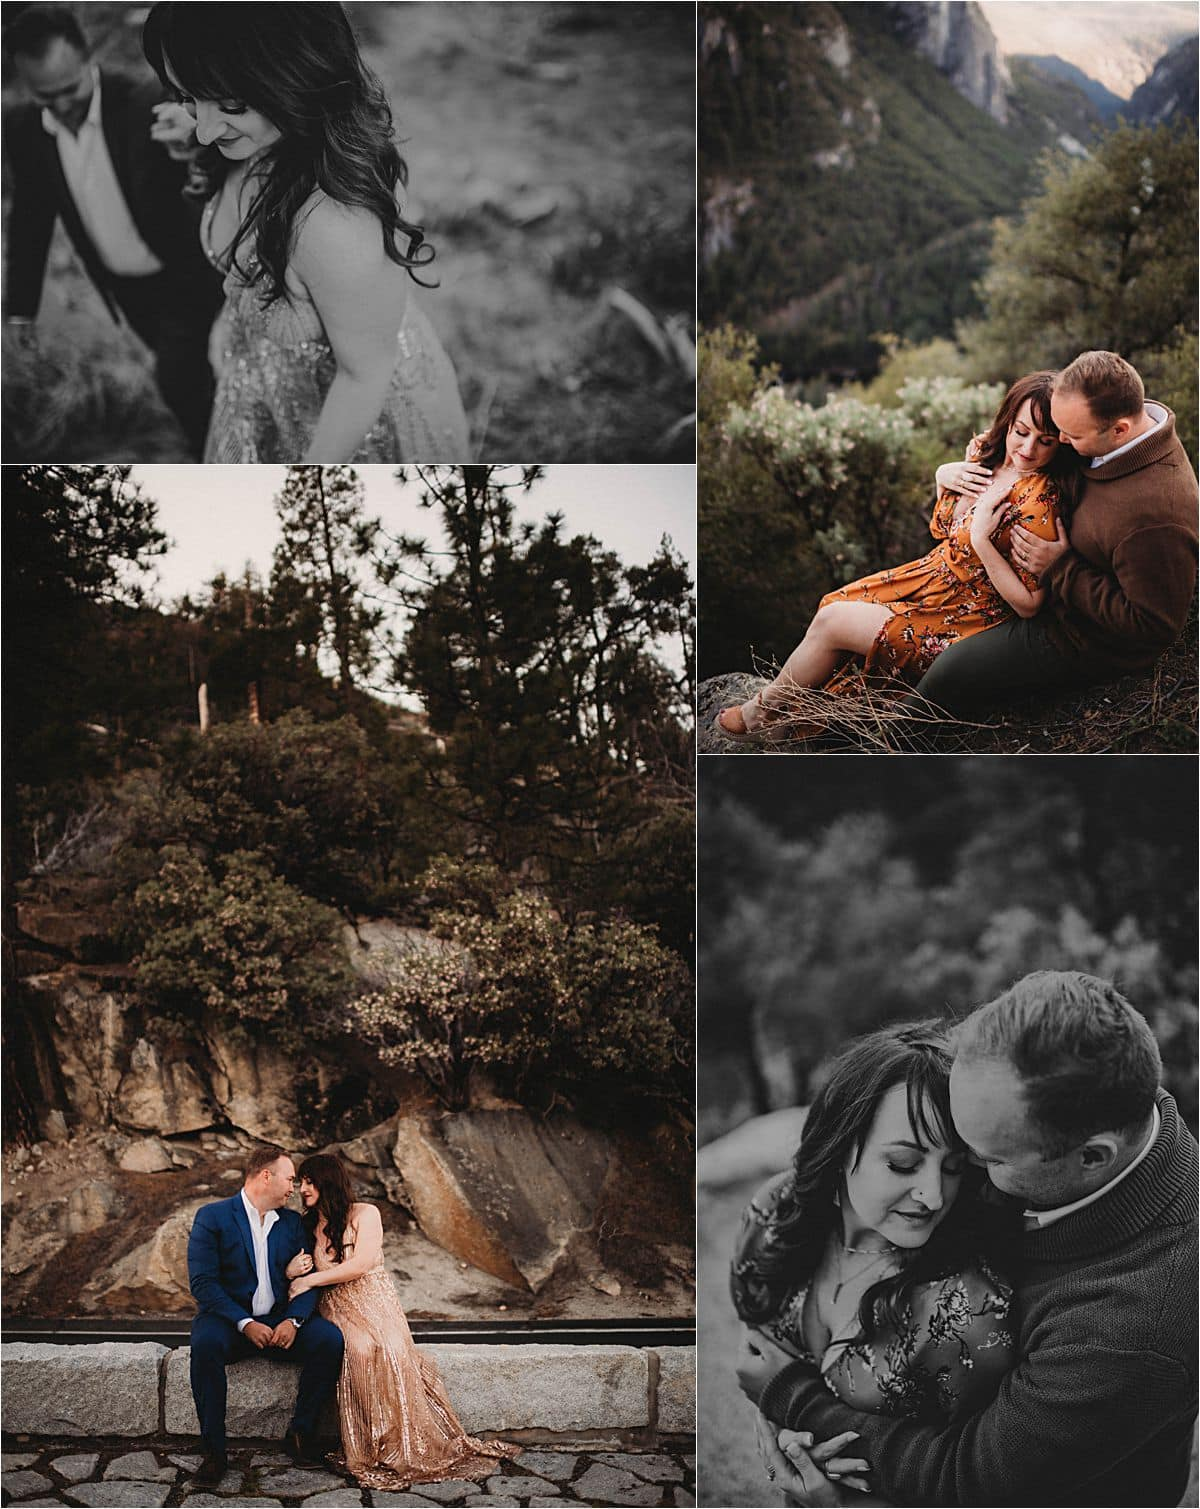 Glamorous Portrait Session Collage Couple Snuggling